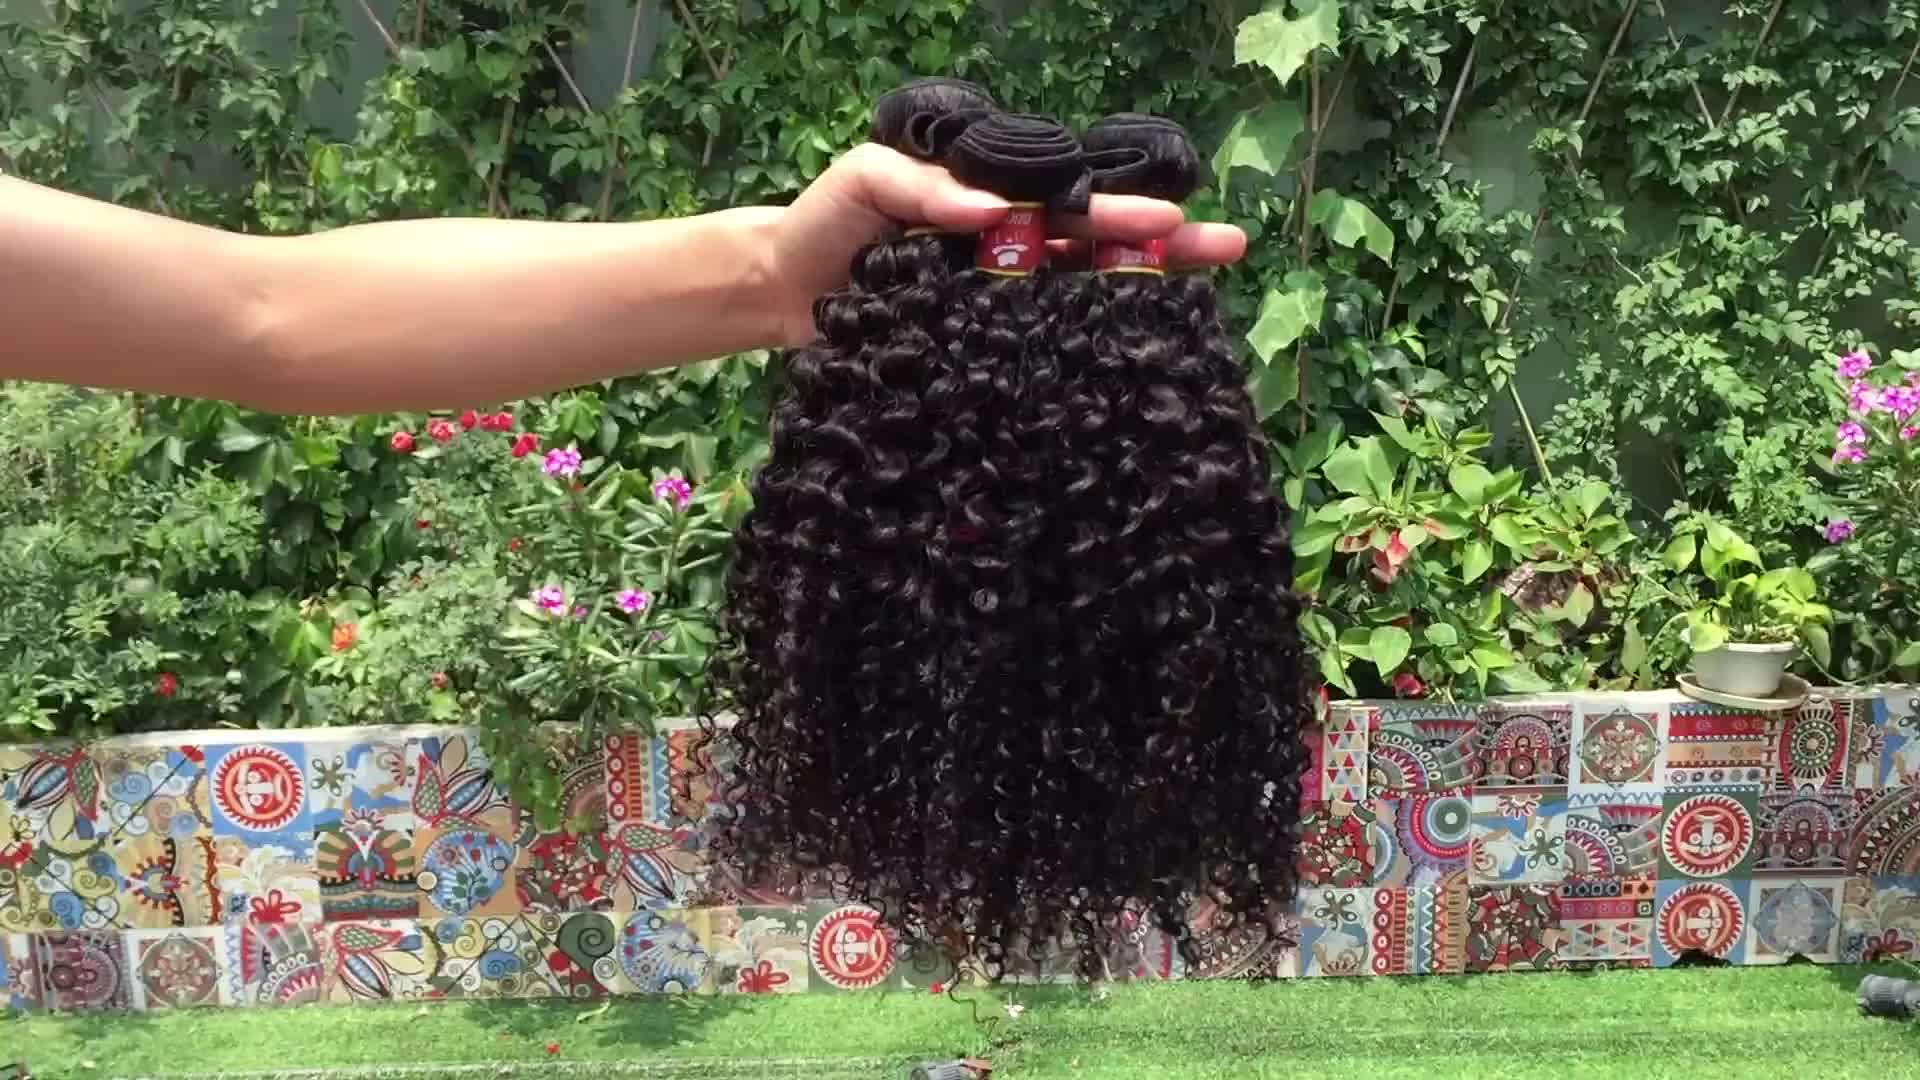 New arrival cheap honey blonde curly weave hair,32 inch blonde hair extensions,cheap virgin wet and wavy brazilian hair blonde